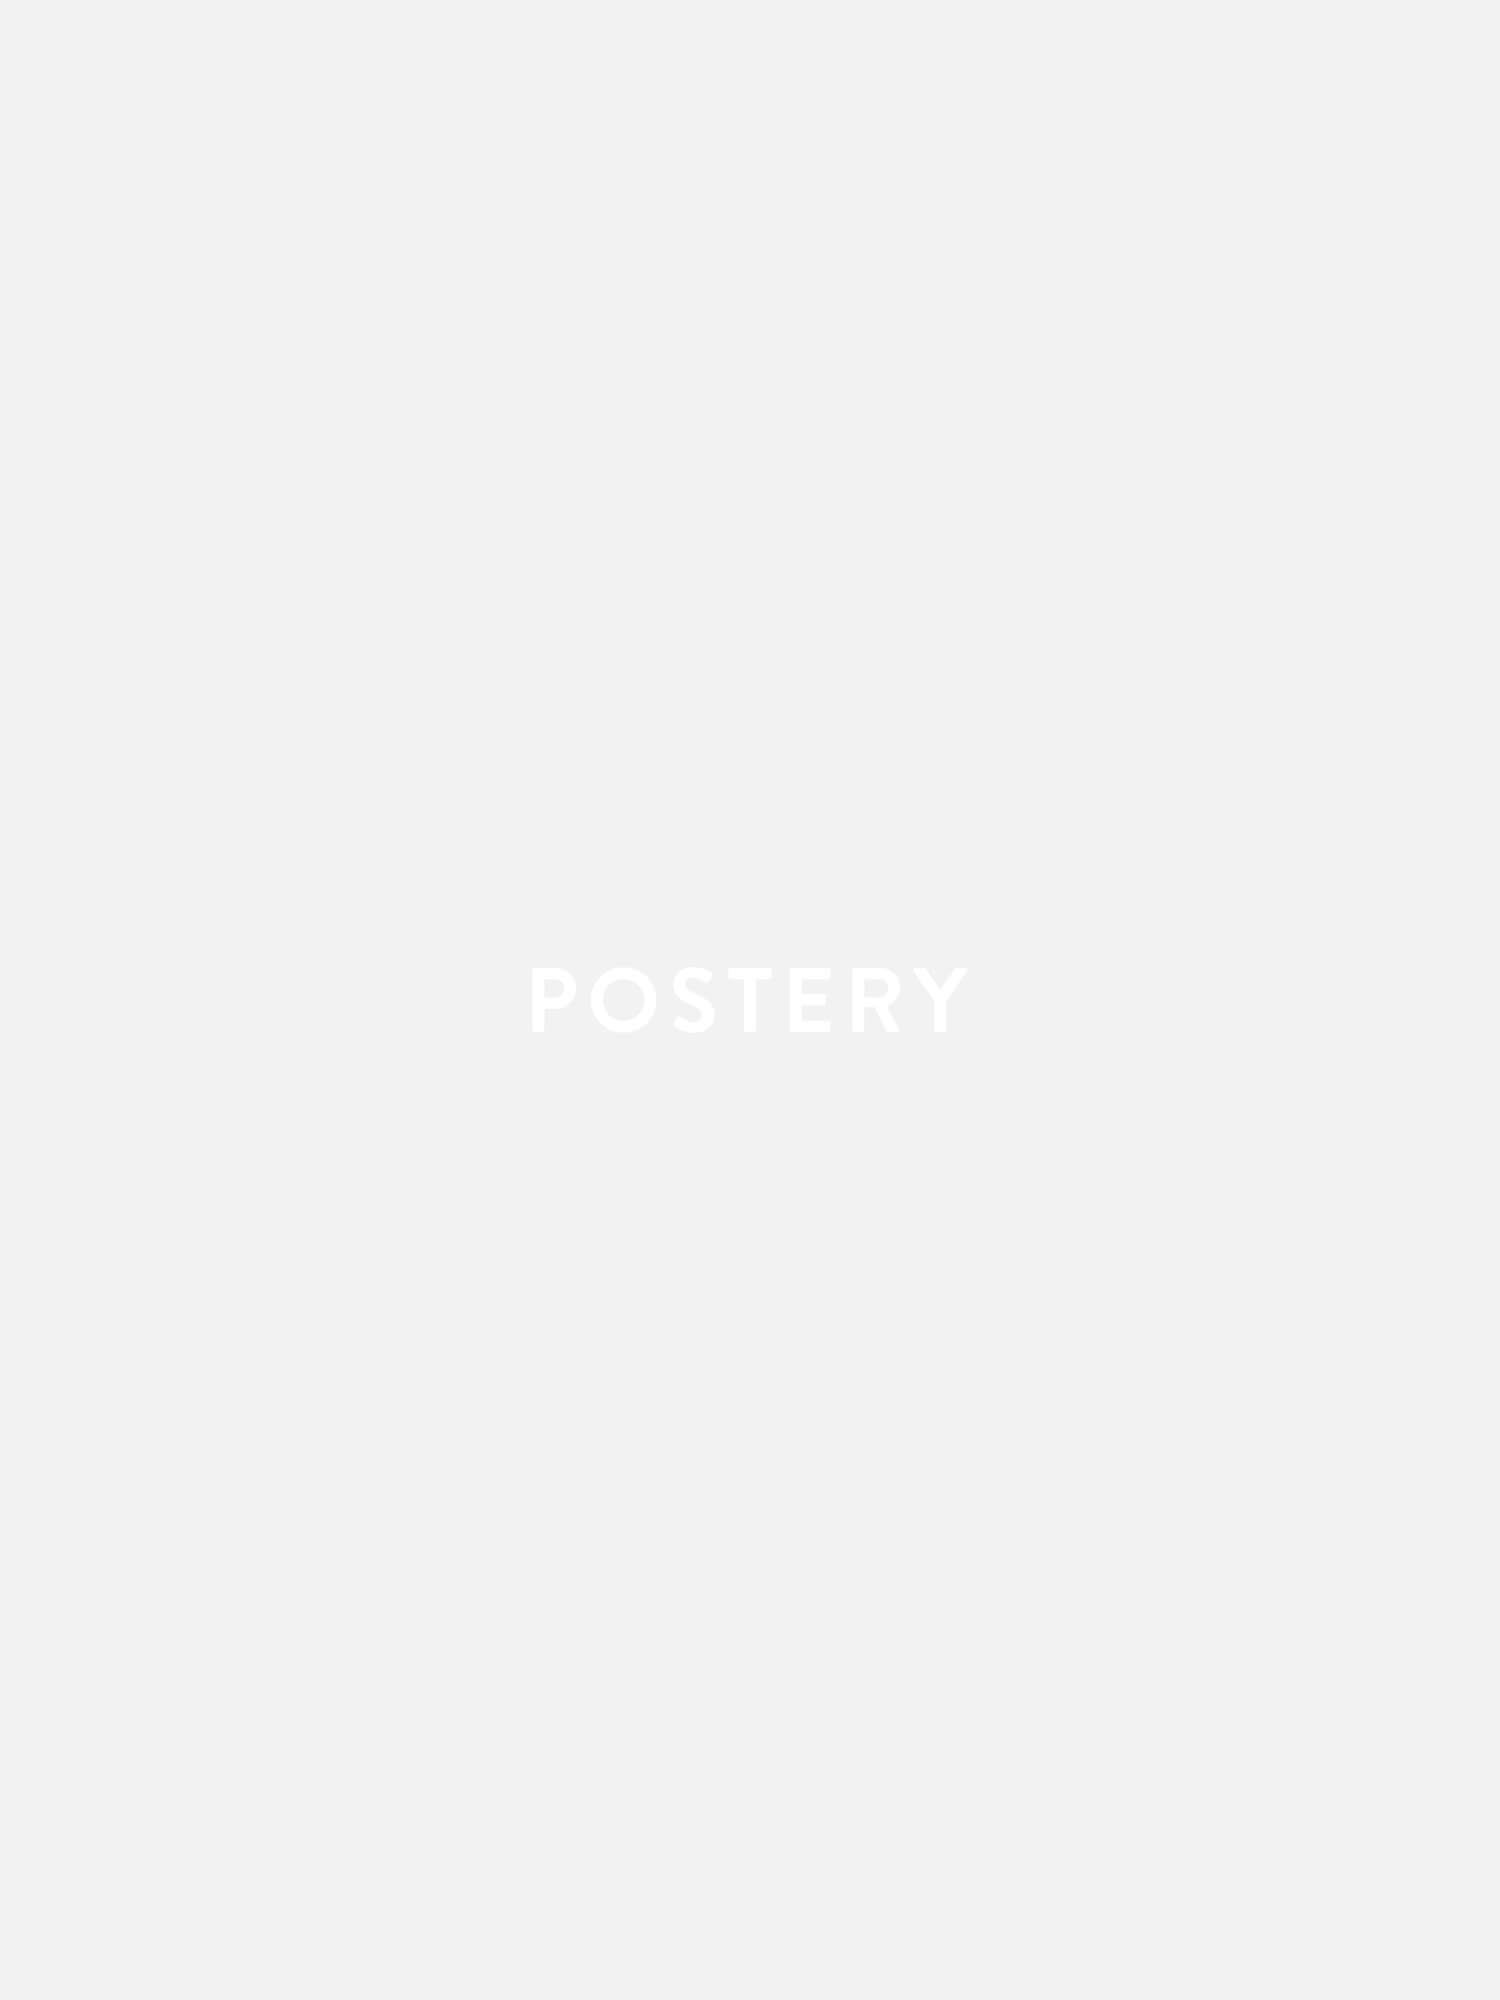 Gallery Wall #6861